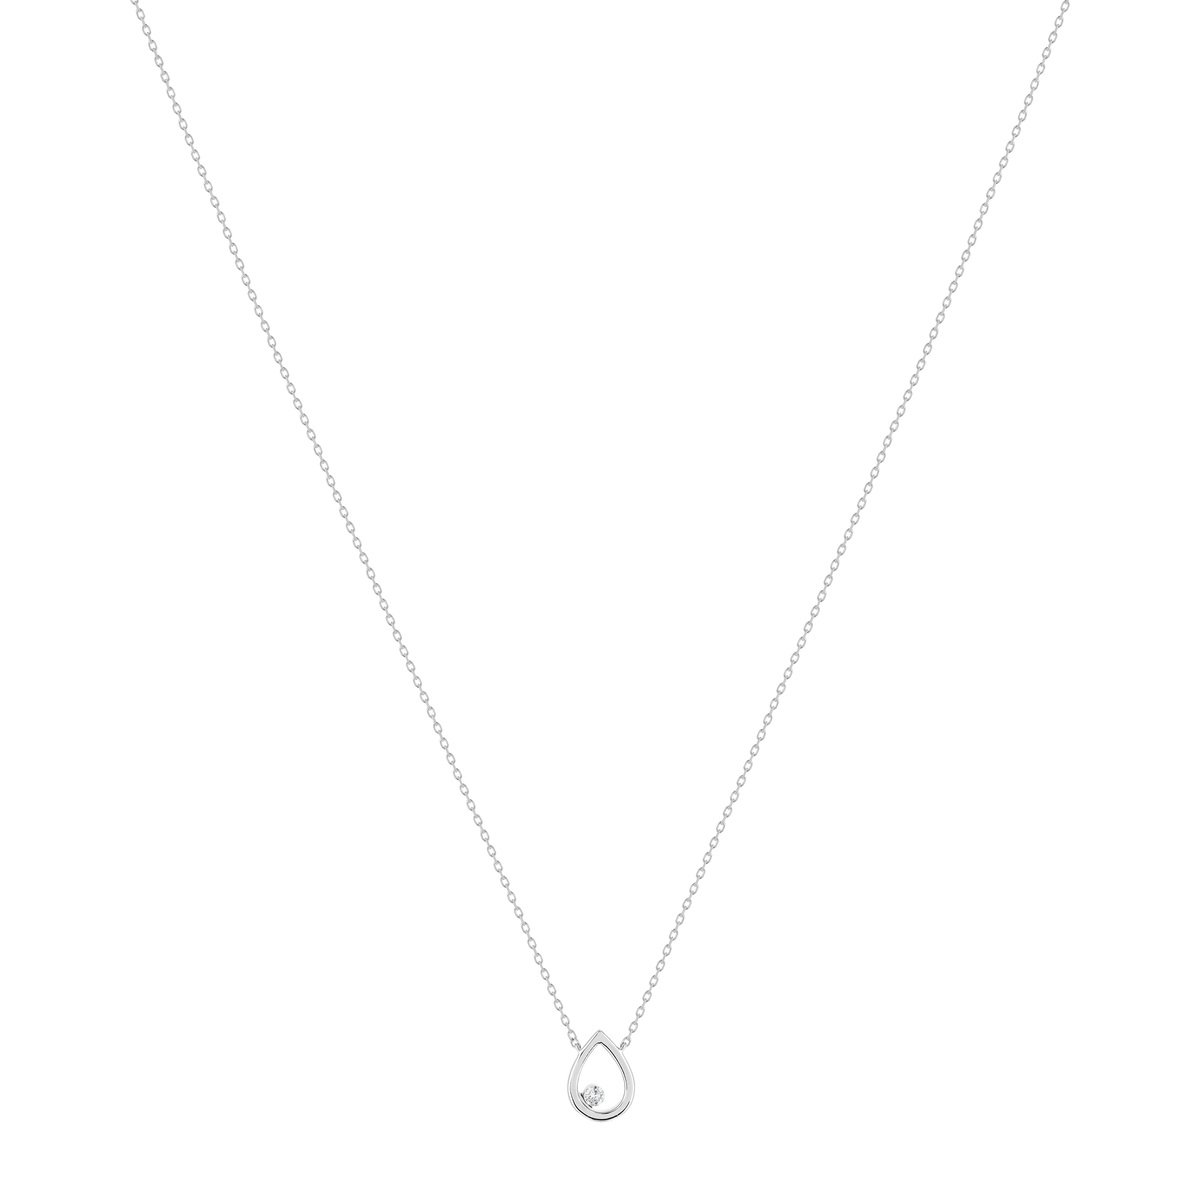 Collier or blanc 375 diamant 42 cm - vue 1